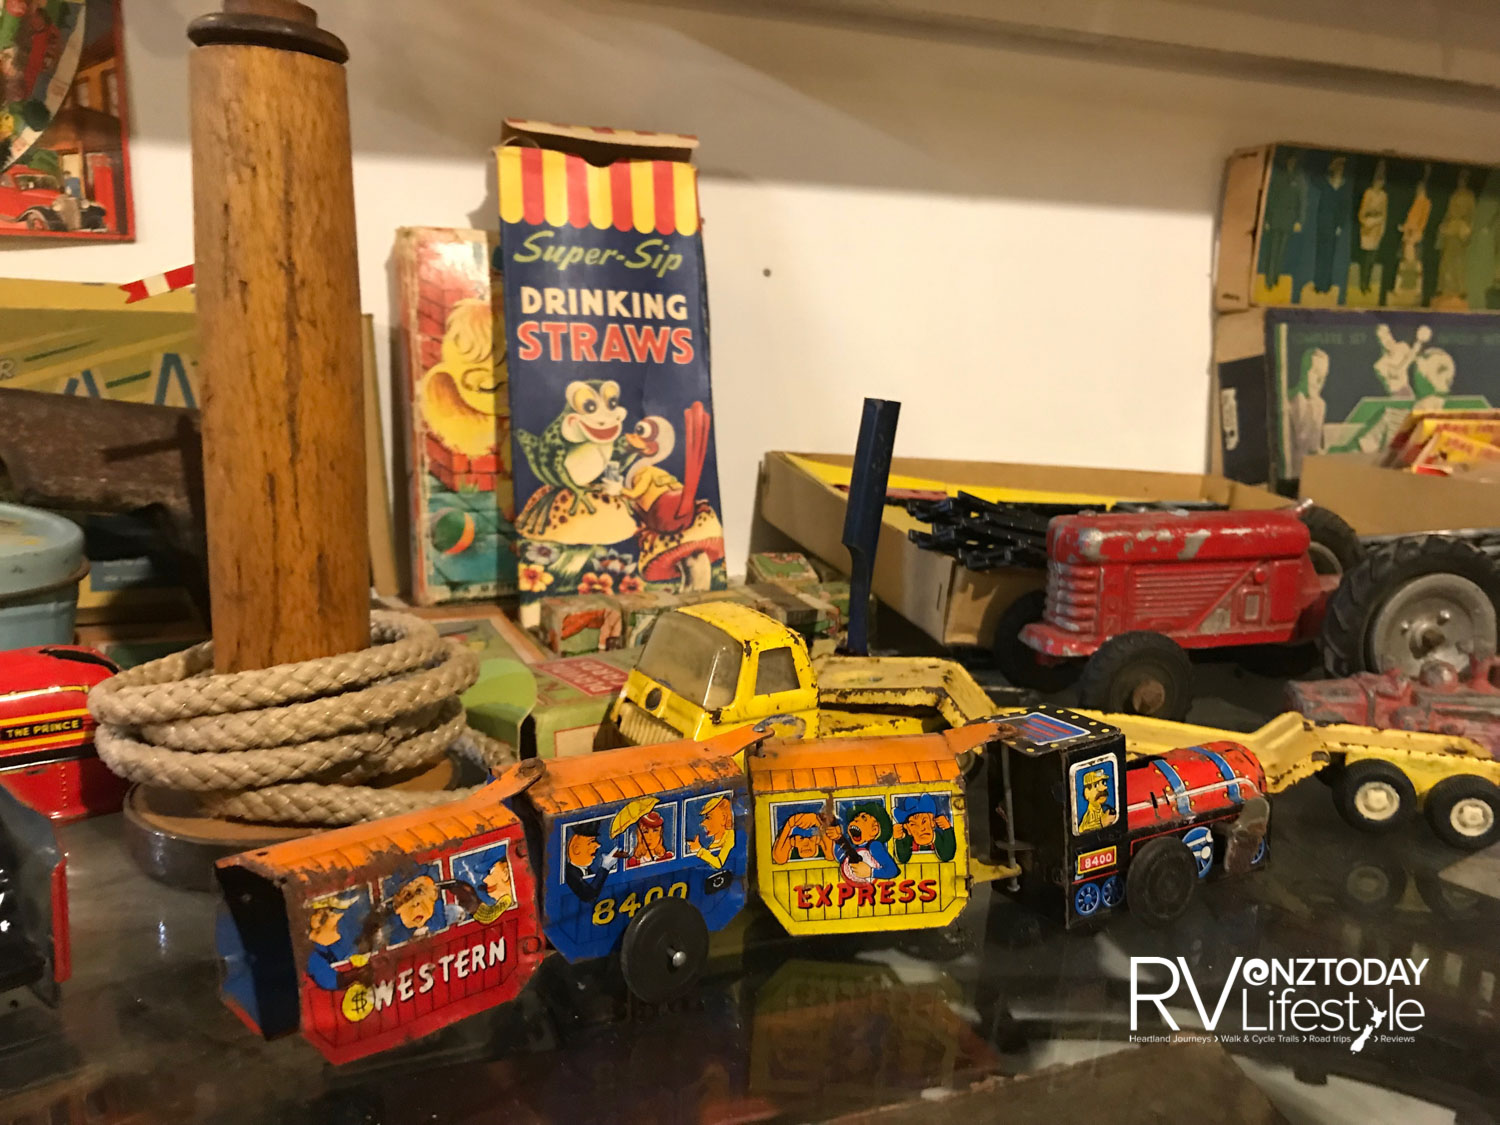 The collection also includes vintage toys